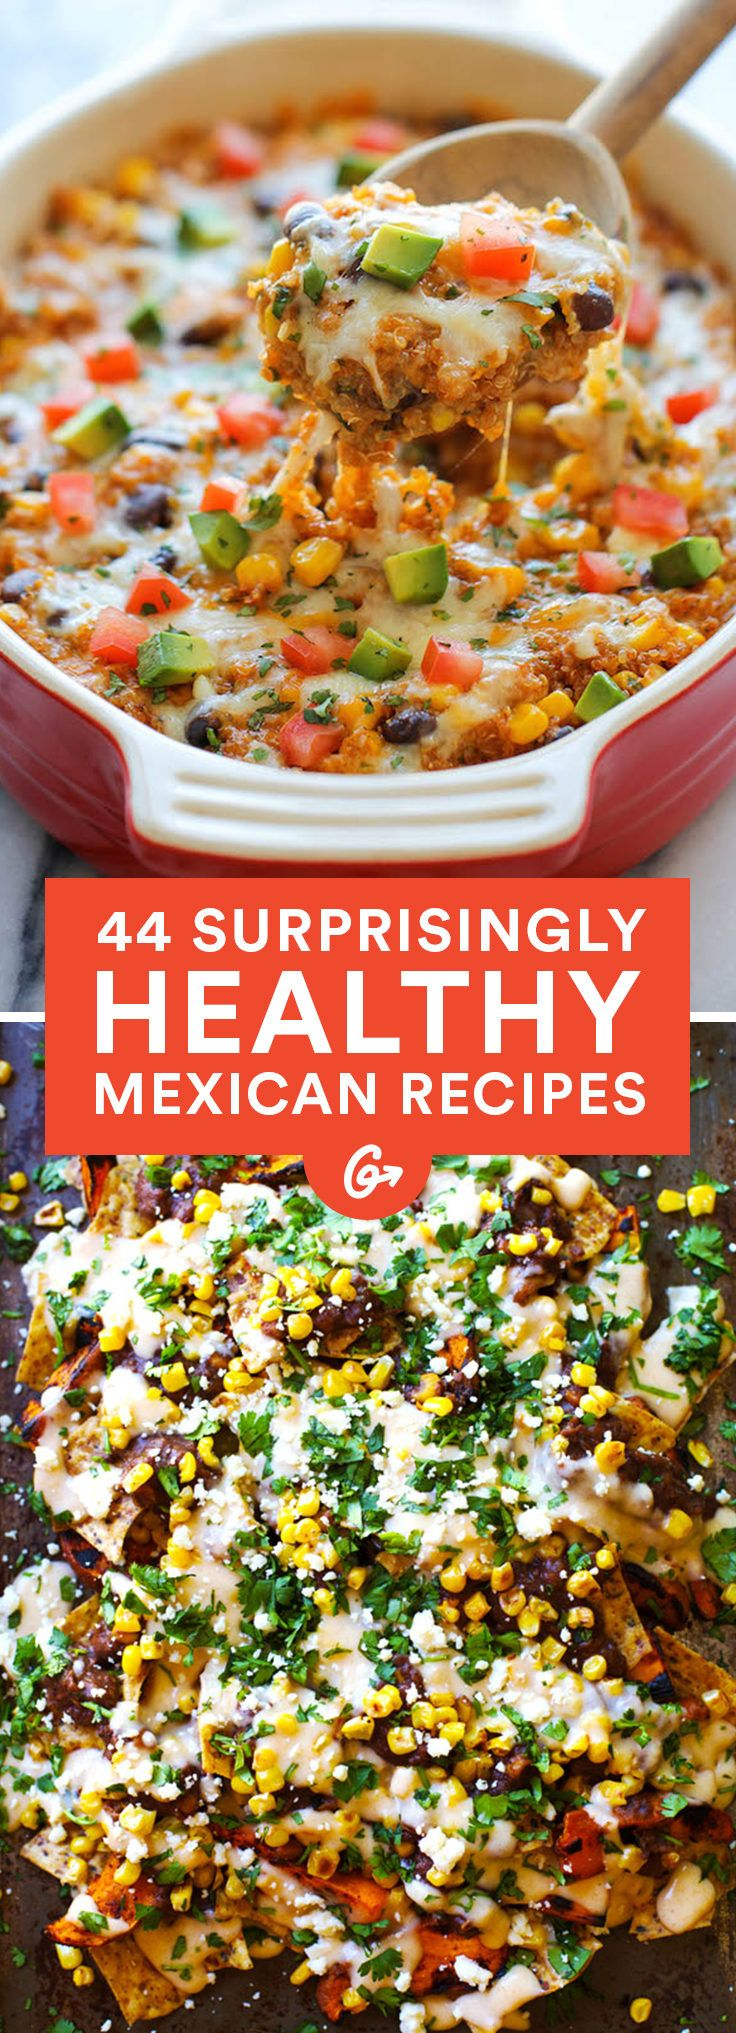 Enjoy all your favorite flavors without feeling like an over-stuffed burrito. #healthy #mexican #recipes http://greatist.com/eat/healthy-mexican-recipes